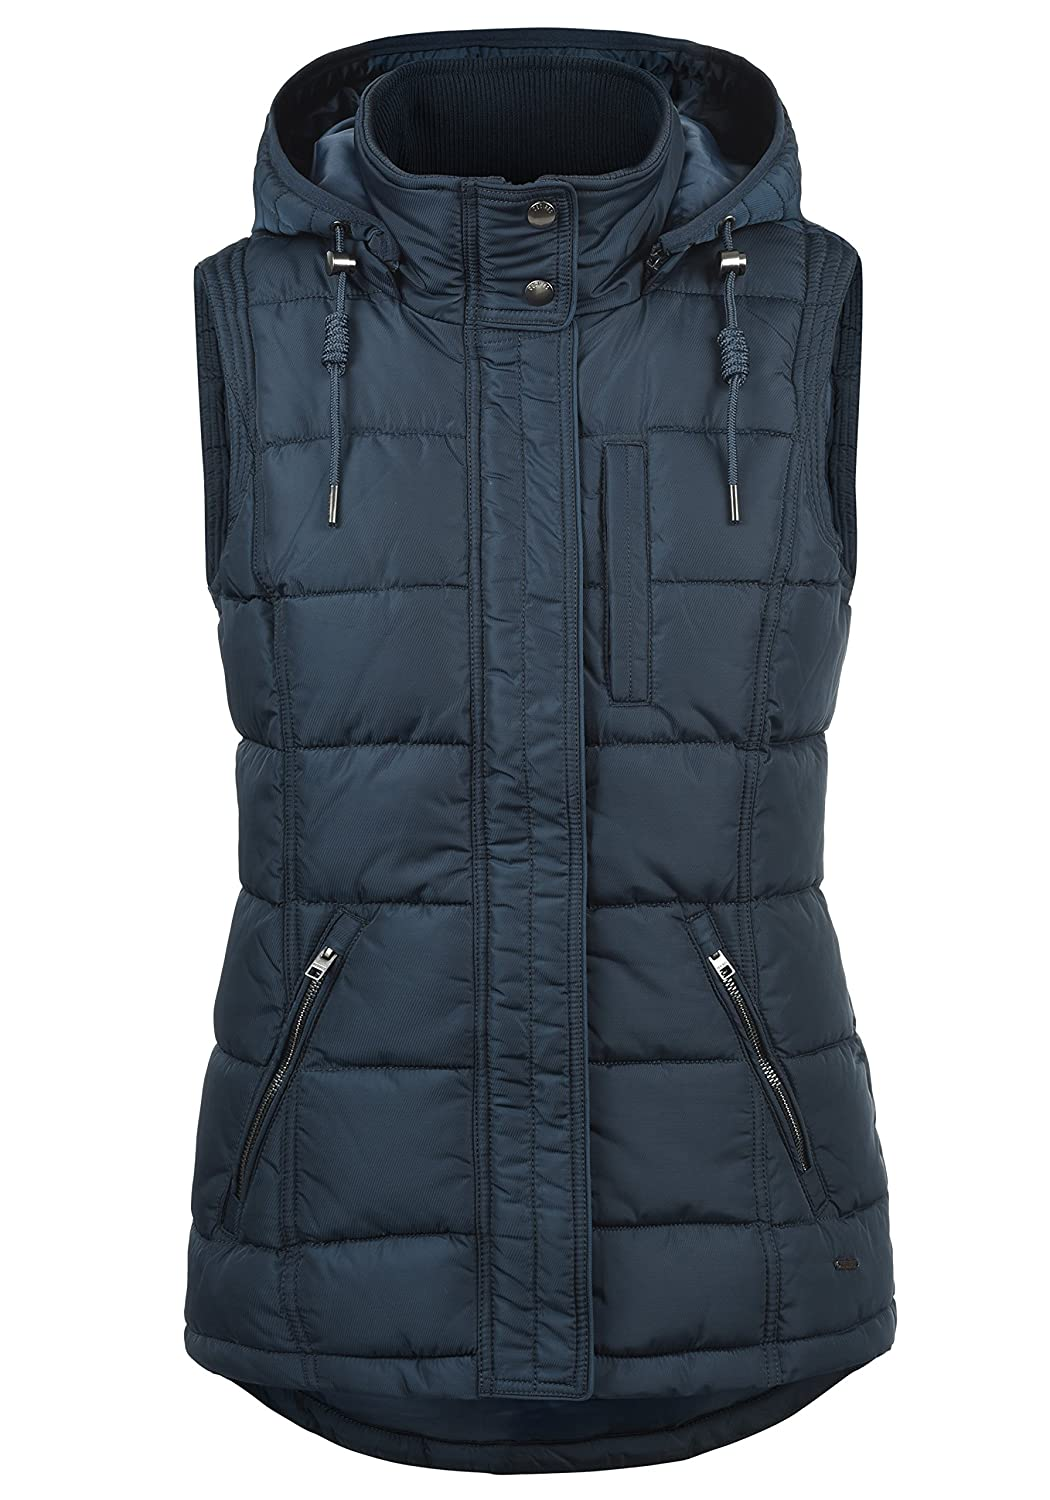 Desires Naomi Women's Quilted Gilet Vest Body Warmer Hood